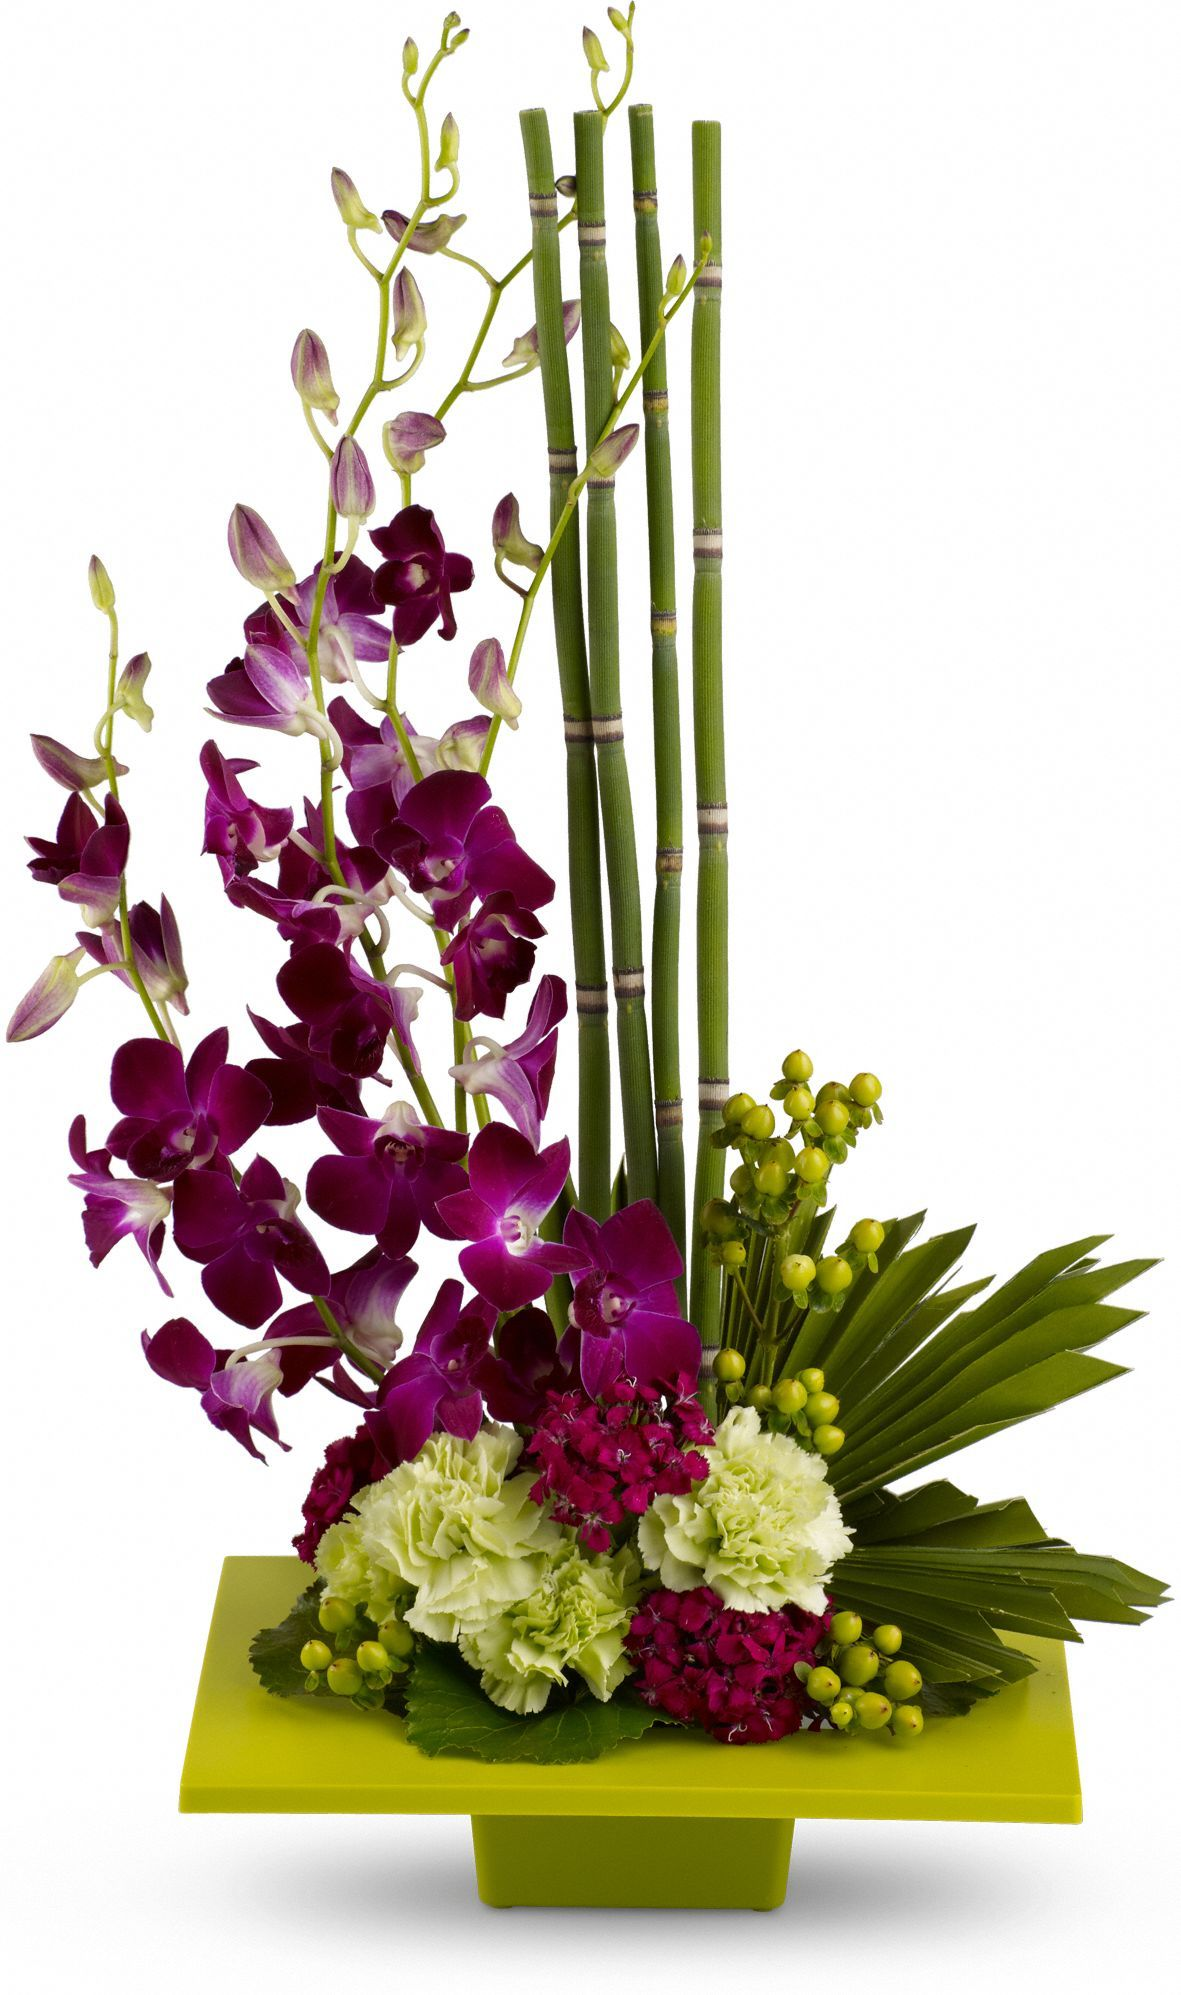 Zen artistry save 25 on this bouquet and many others with coupon zen artistry save 25 on this bouquet and many others with coupon code tfmdayok1b2 offer reviewsmspy